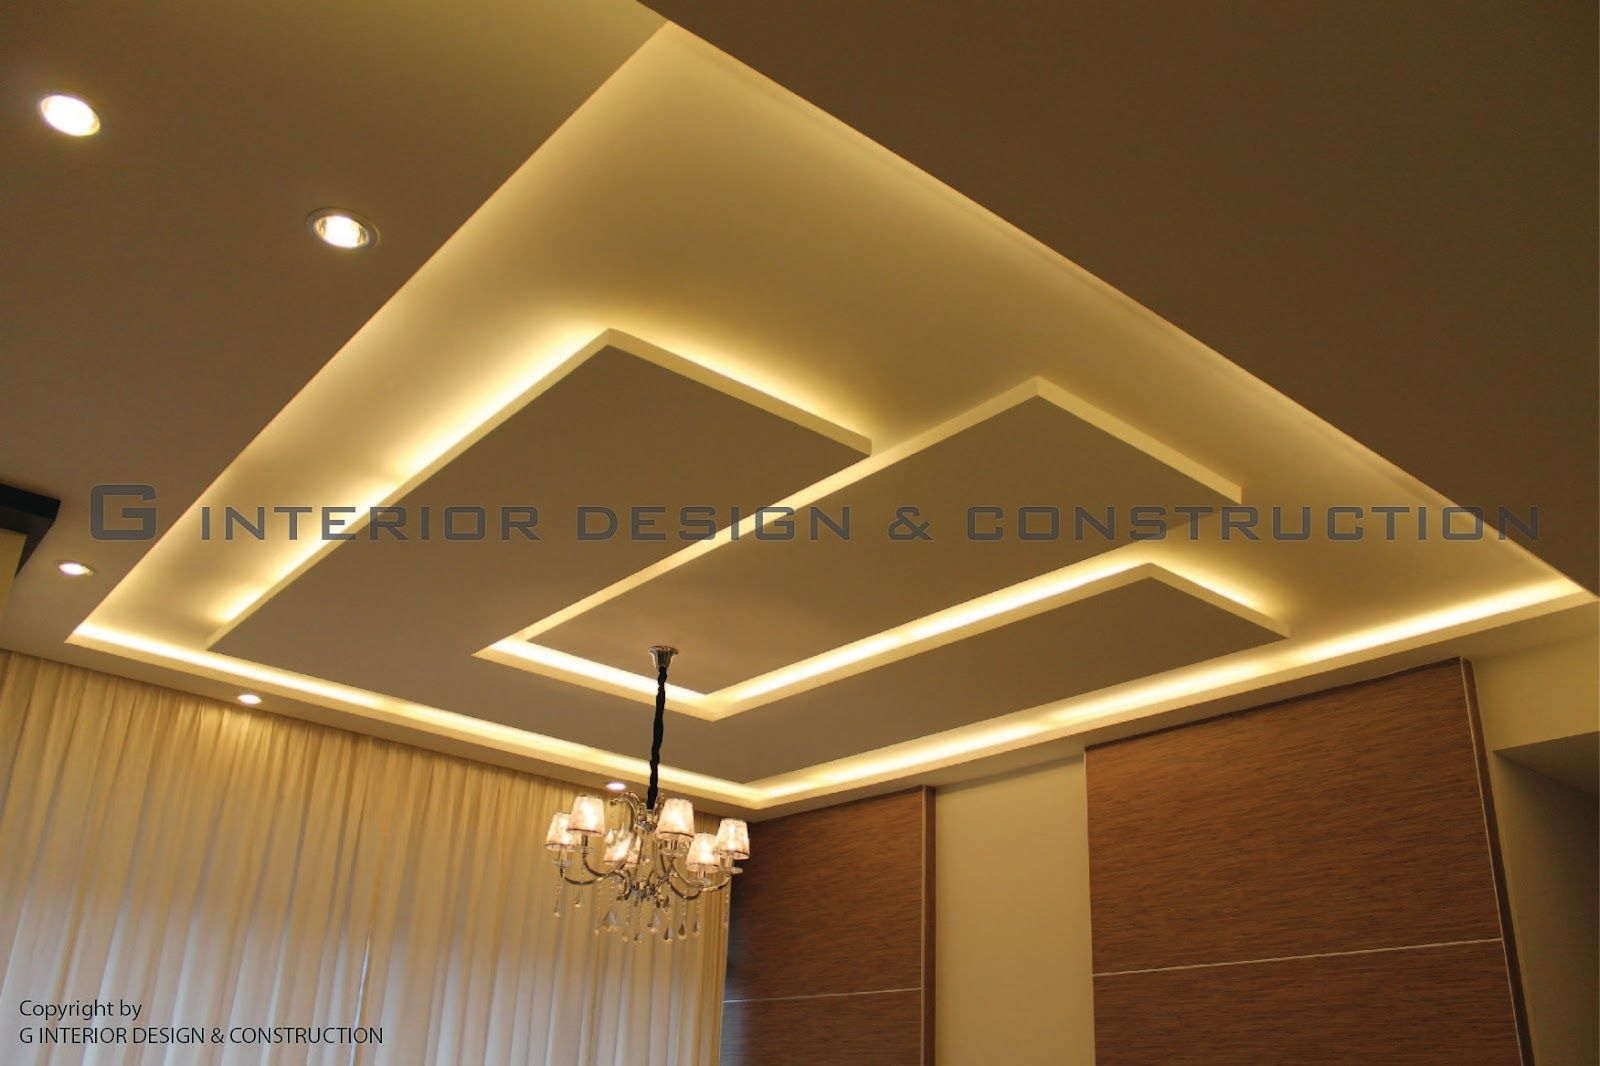 Ceiling Illumination  Interior Design & Construction Sdn Bhd Captivating Plaster Of Paris Ceiling Designs For Living Room Decorating Inspiration